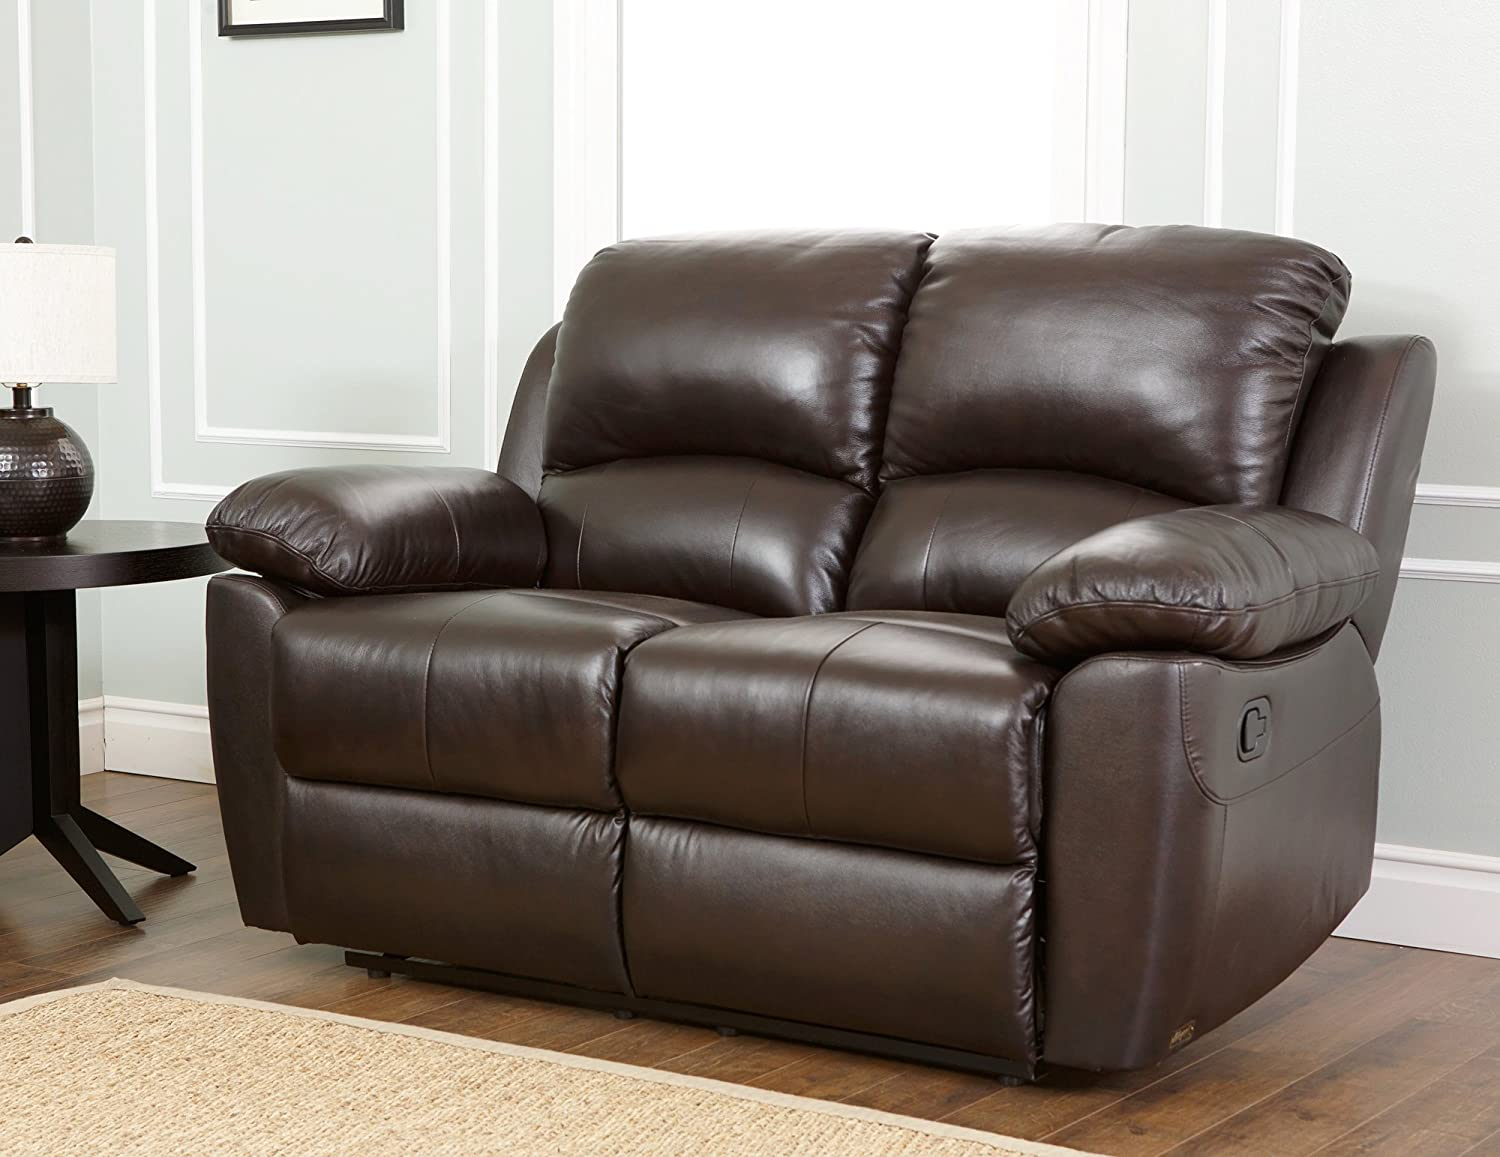 Great Amazon.com: Abbyson Westwood Top Grain Leather Loveseat: Home U0026 Kitchen